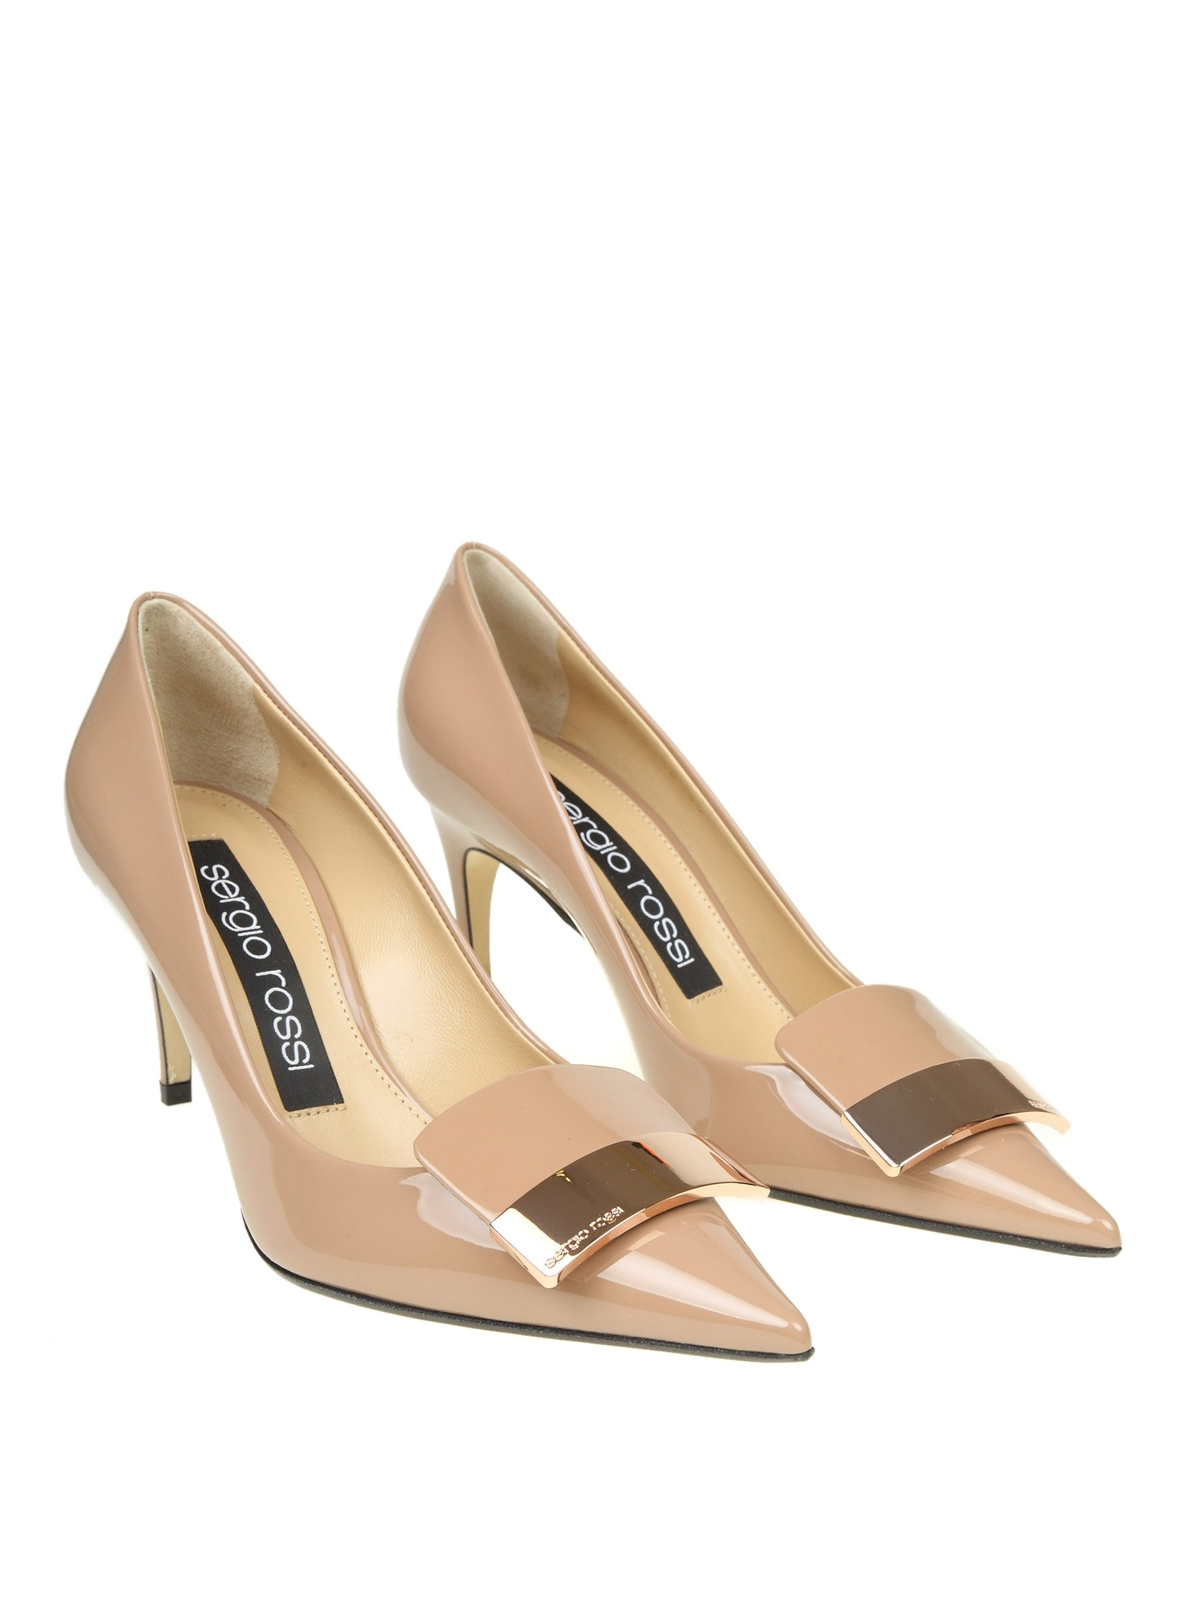 Sr1 Sergio Pumps Nude Patent Court Rossi Leather Shoes hrCBtQdxso